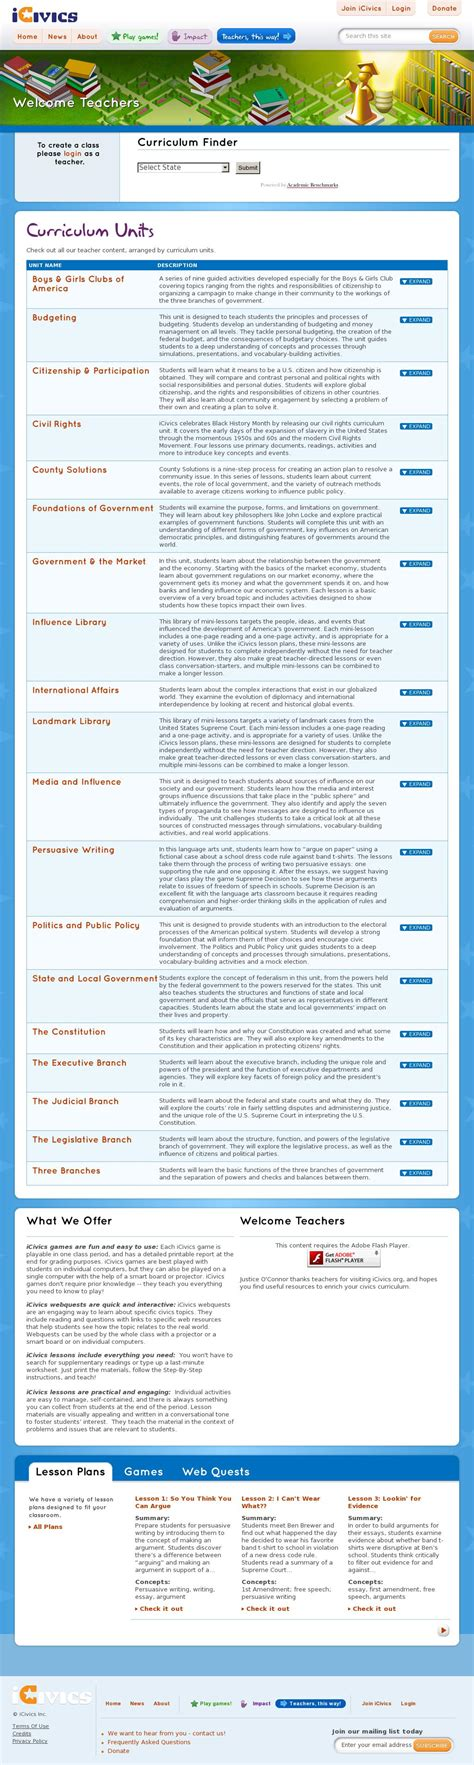 Icivics answer key the market economy free market economyfree market economy • in a free market, answers to the three key economic questions are made by voluntary exchange in the. Why Government Worksheet Answers Icivics - worksheet